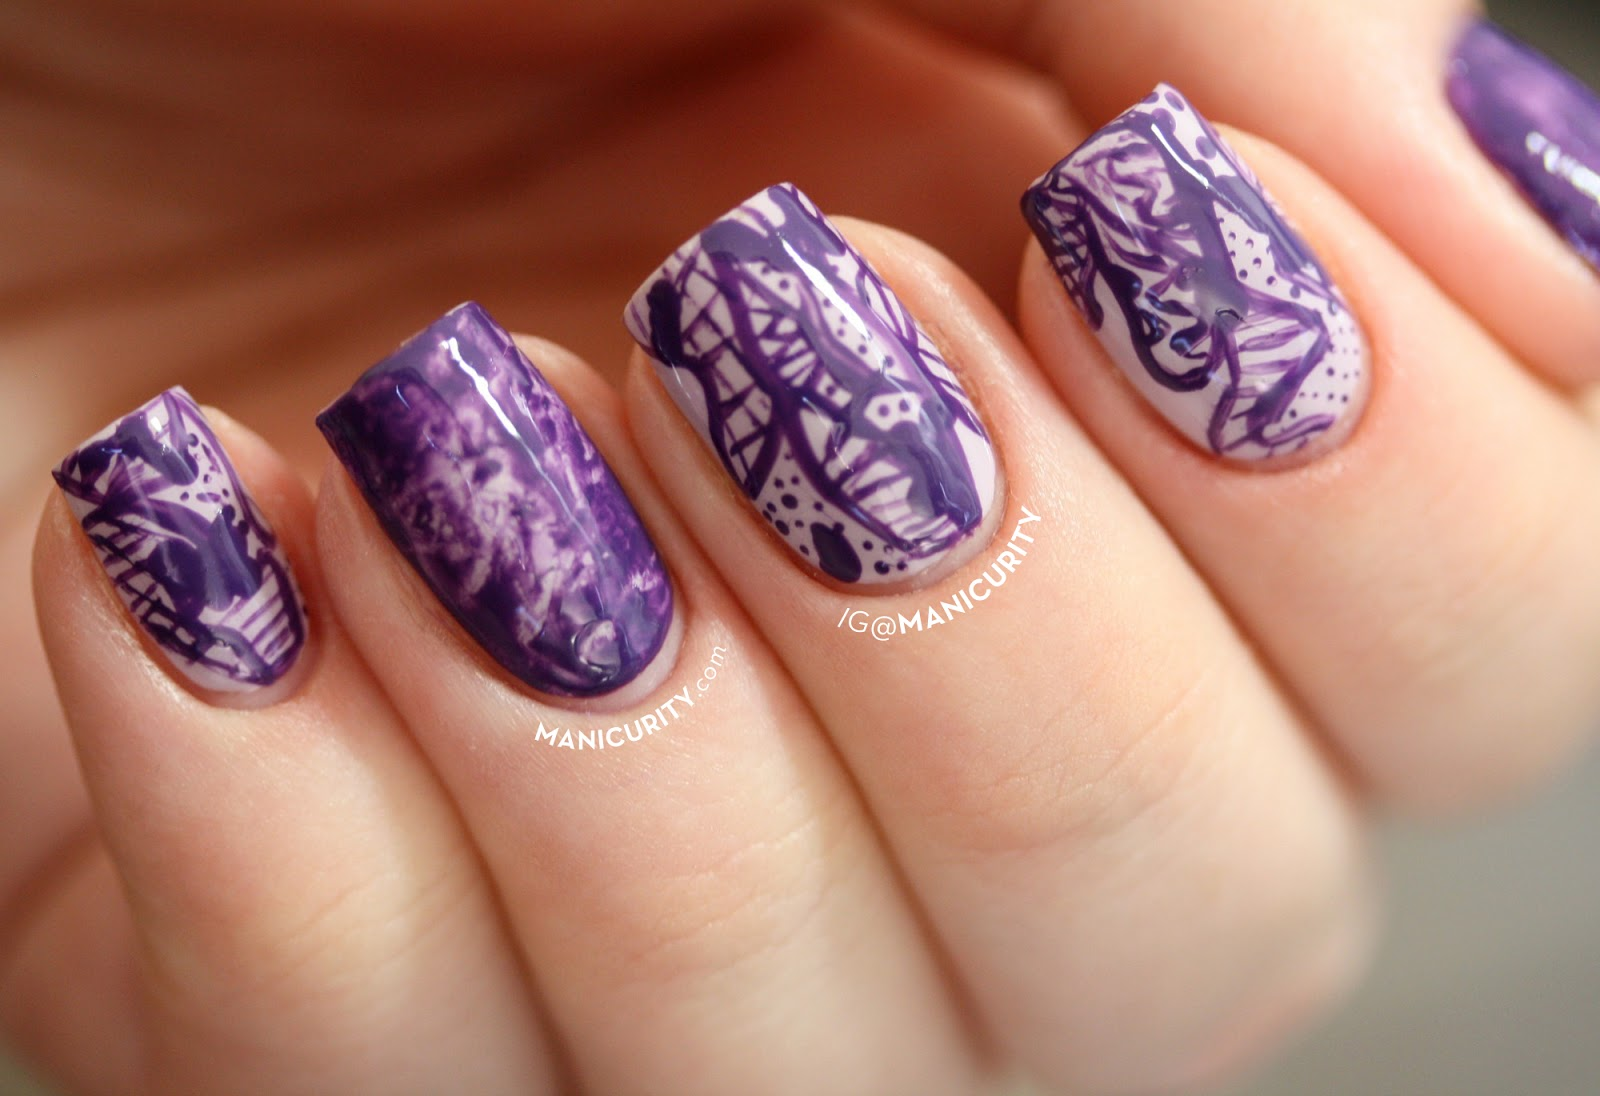 Manicurity.com | Digit-al Dozen: Freehand Purple Urban Camo Nails - monochrome purple freehand abstract linear pattern nail art with saran wrap accents